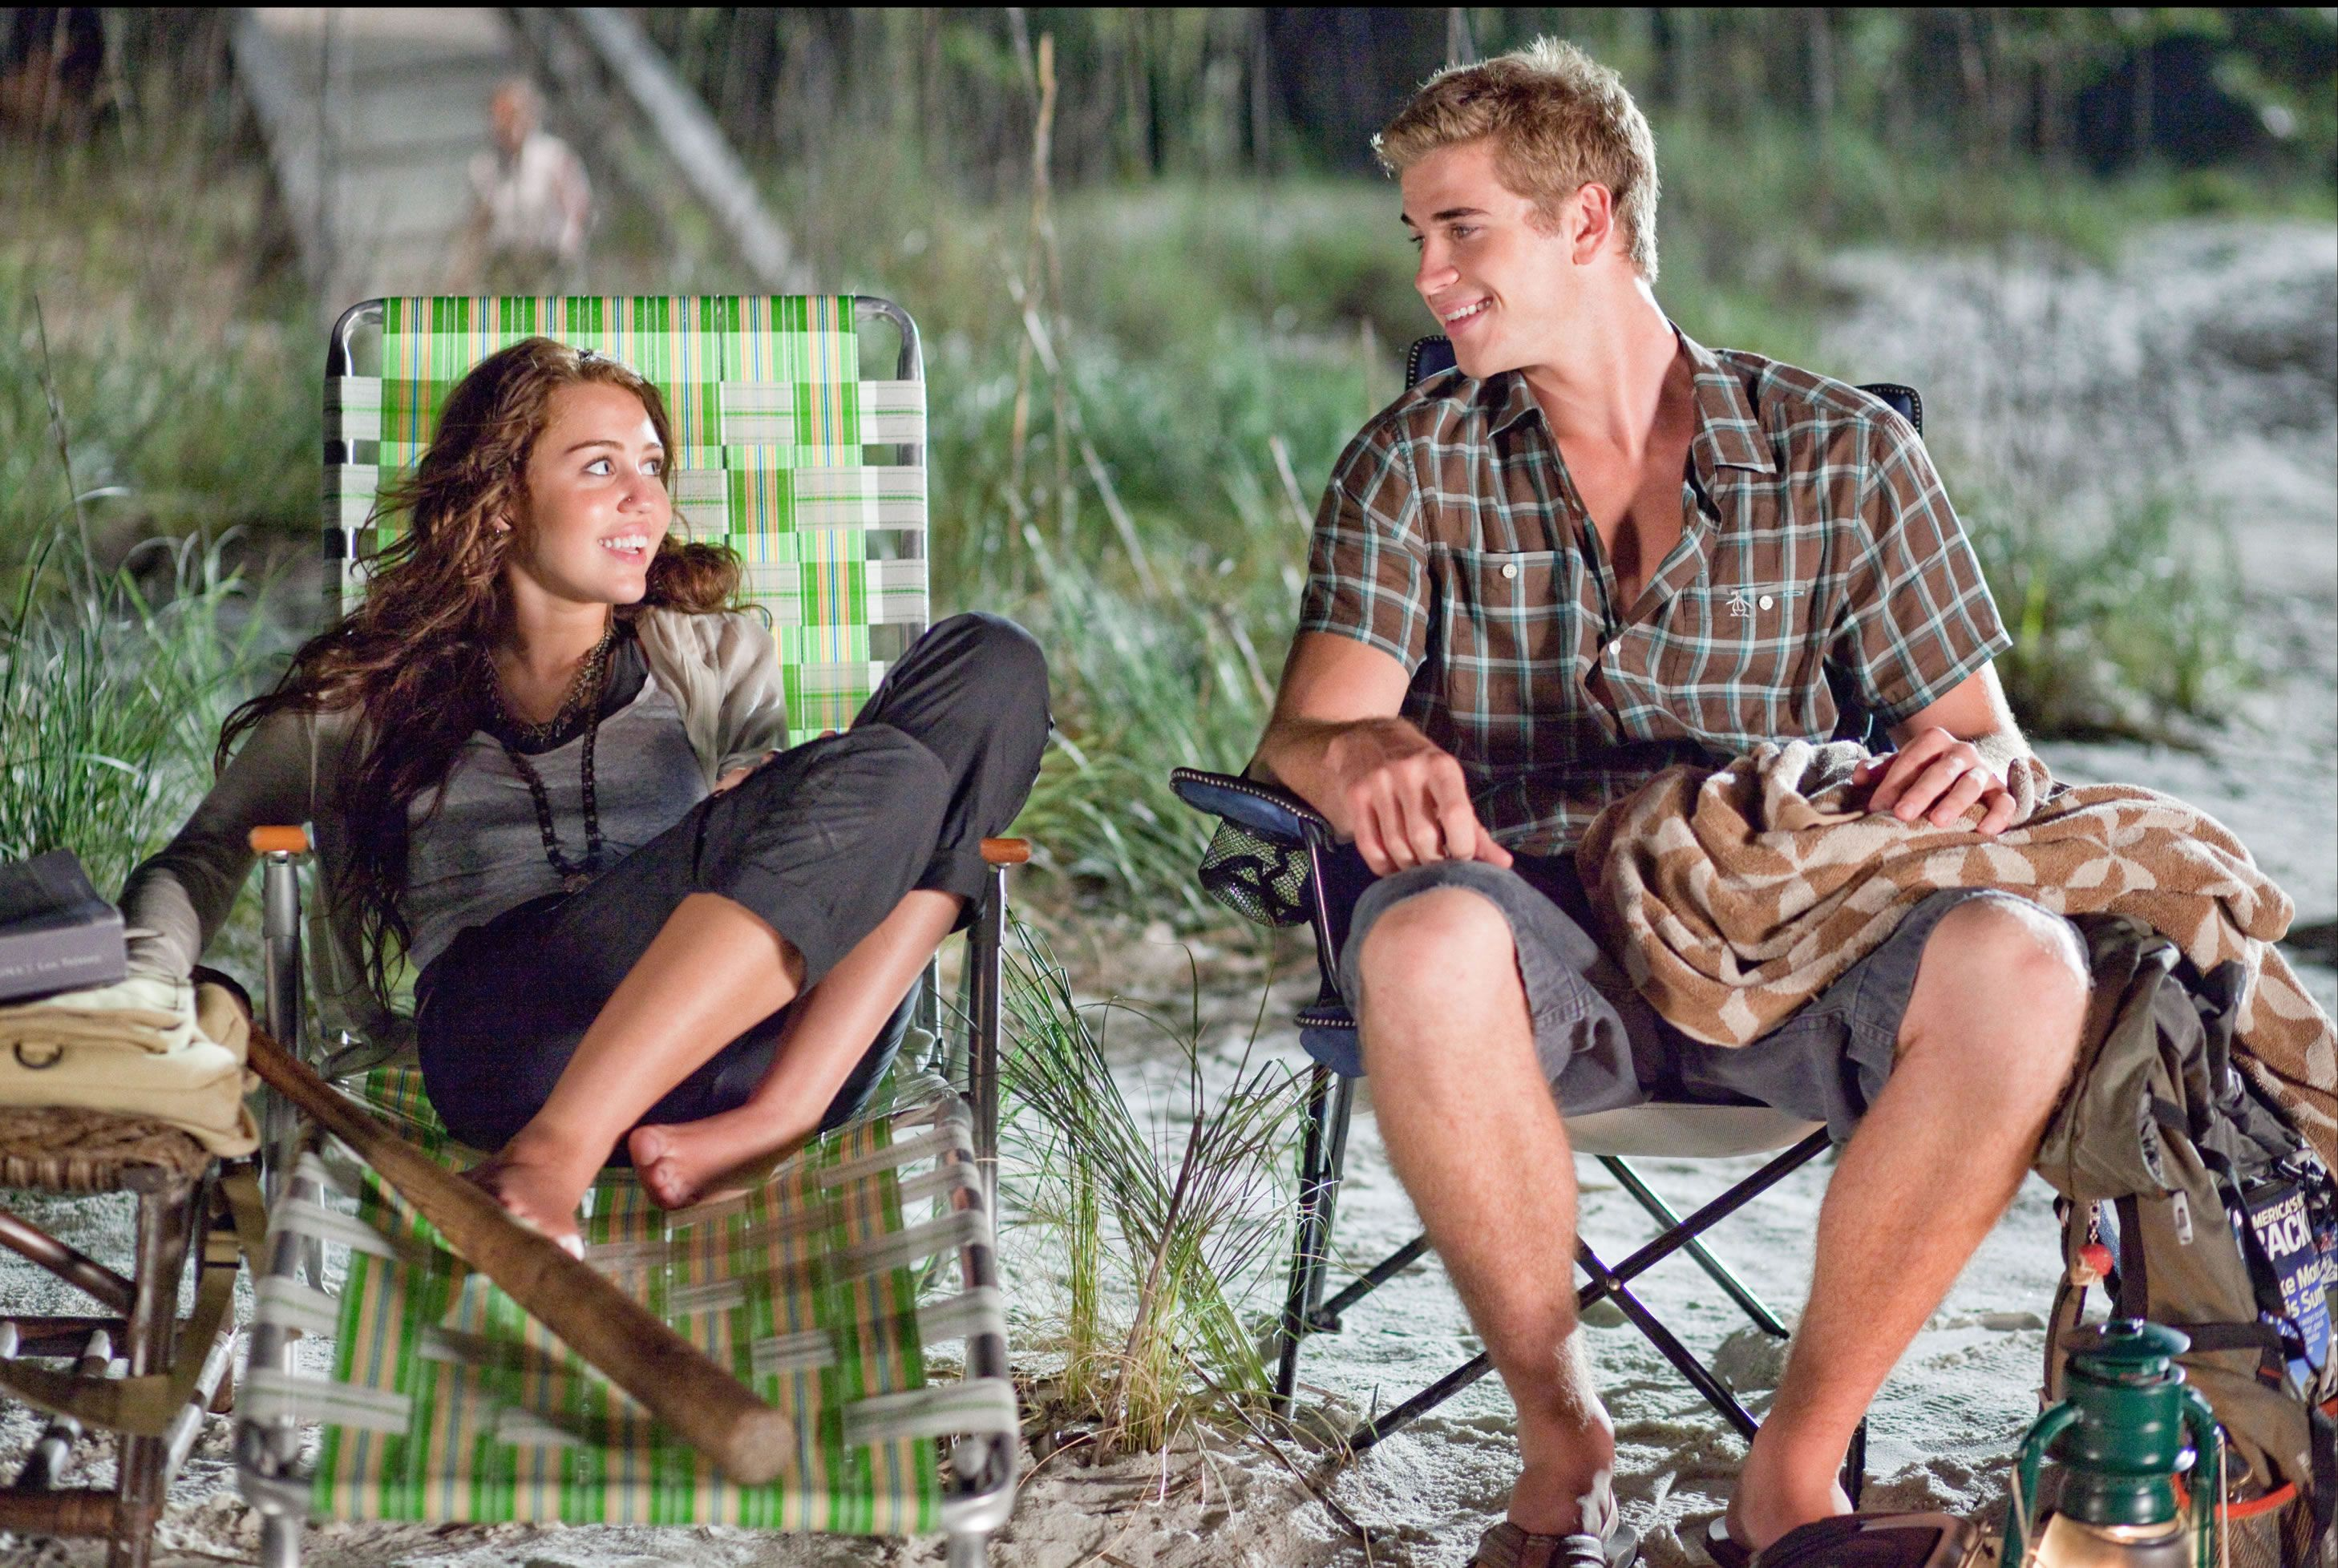 Liam Hemsworth and Miley Cyrus The Last Song movie imageLiam Hemsworth The Last Song Volleyball